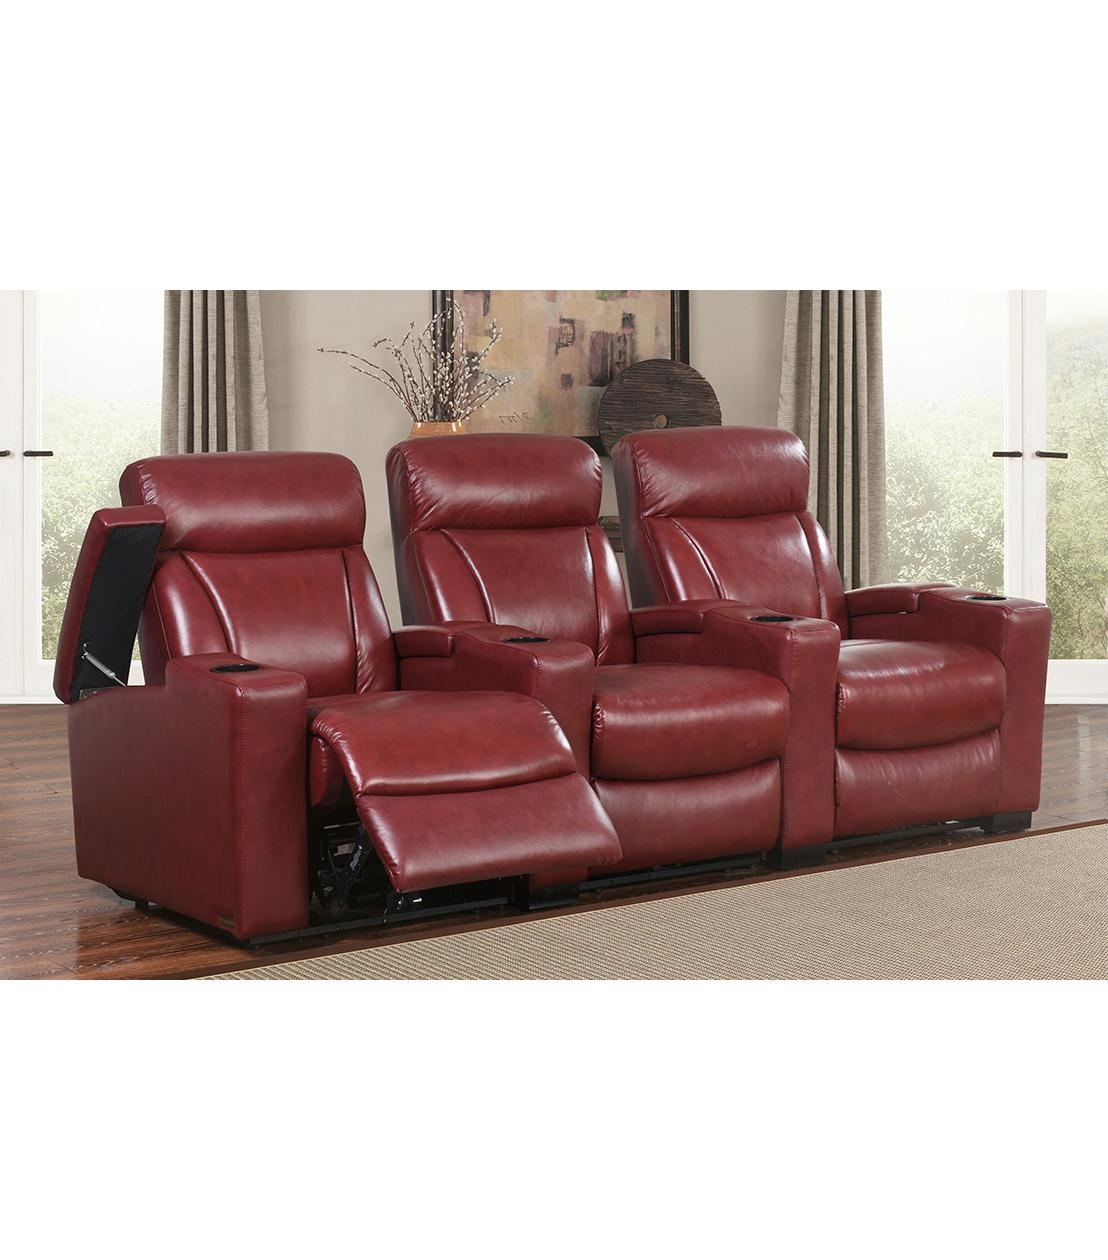 Recliners : Romano 3 Piece Recliners, Red Within Abbyson Recliners (Image 15 of 20)